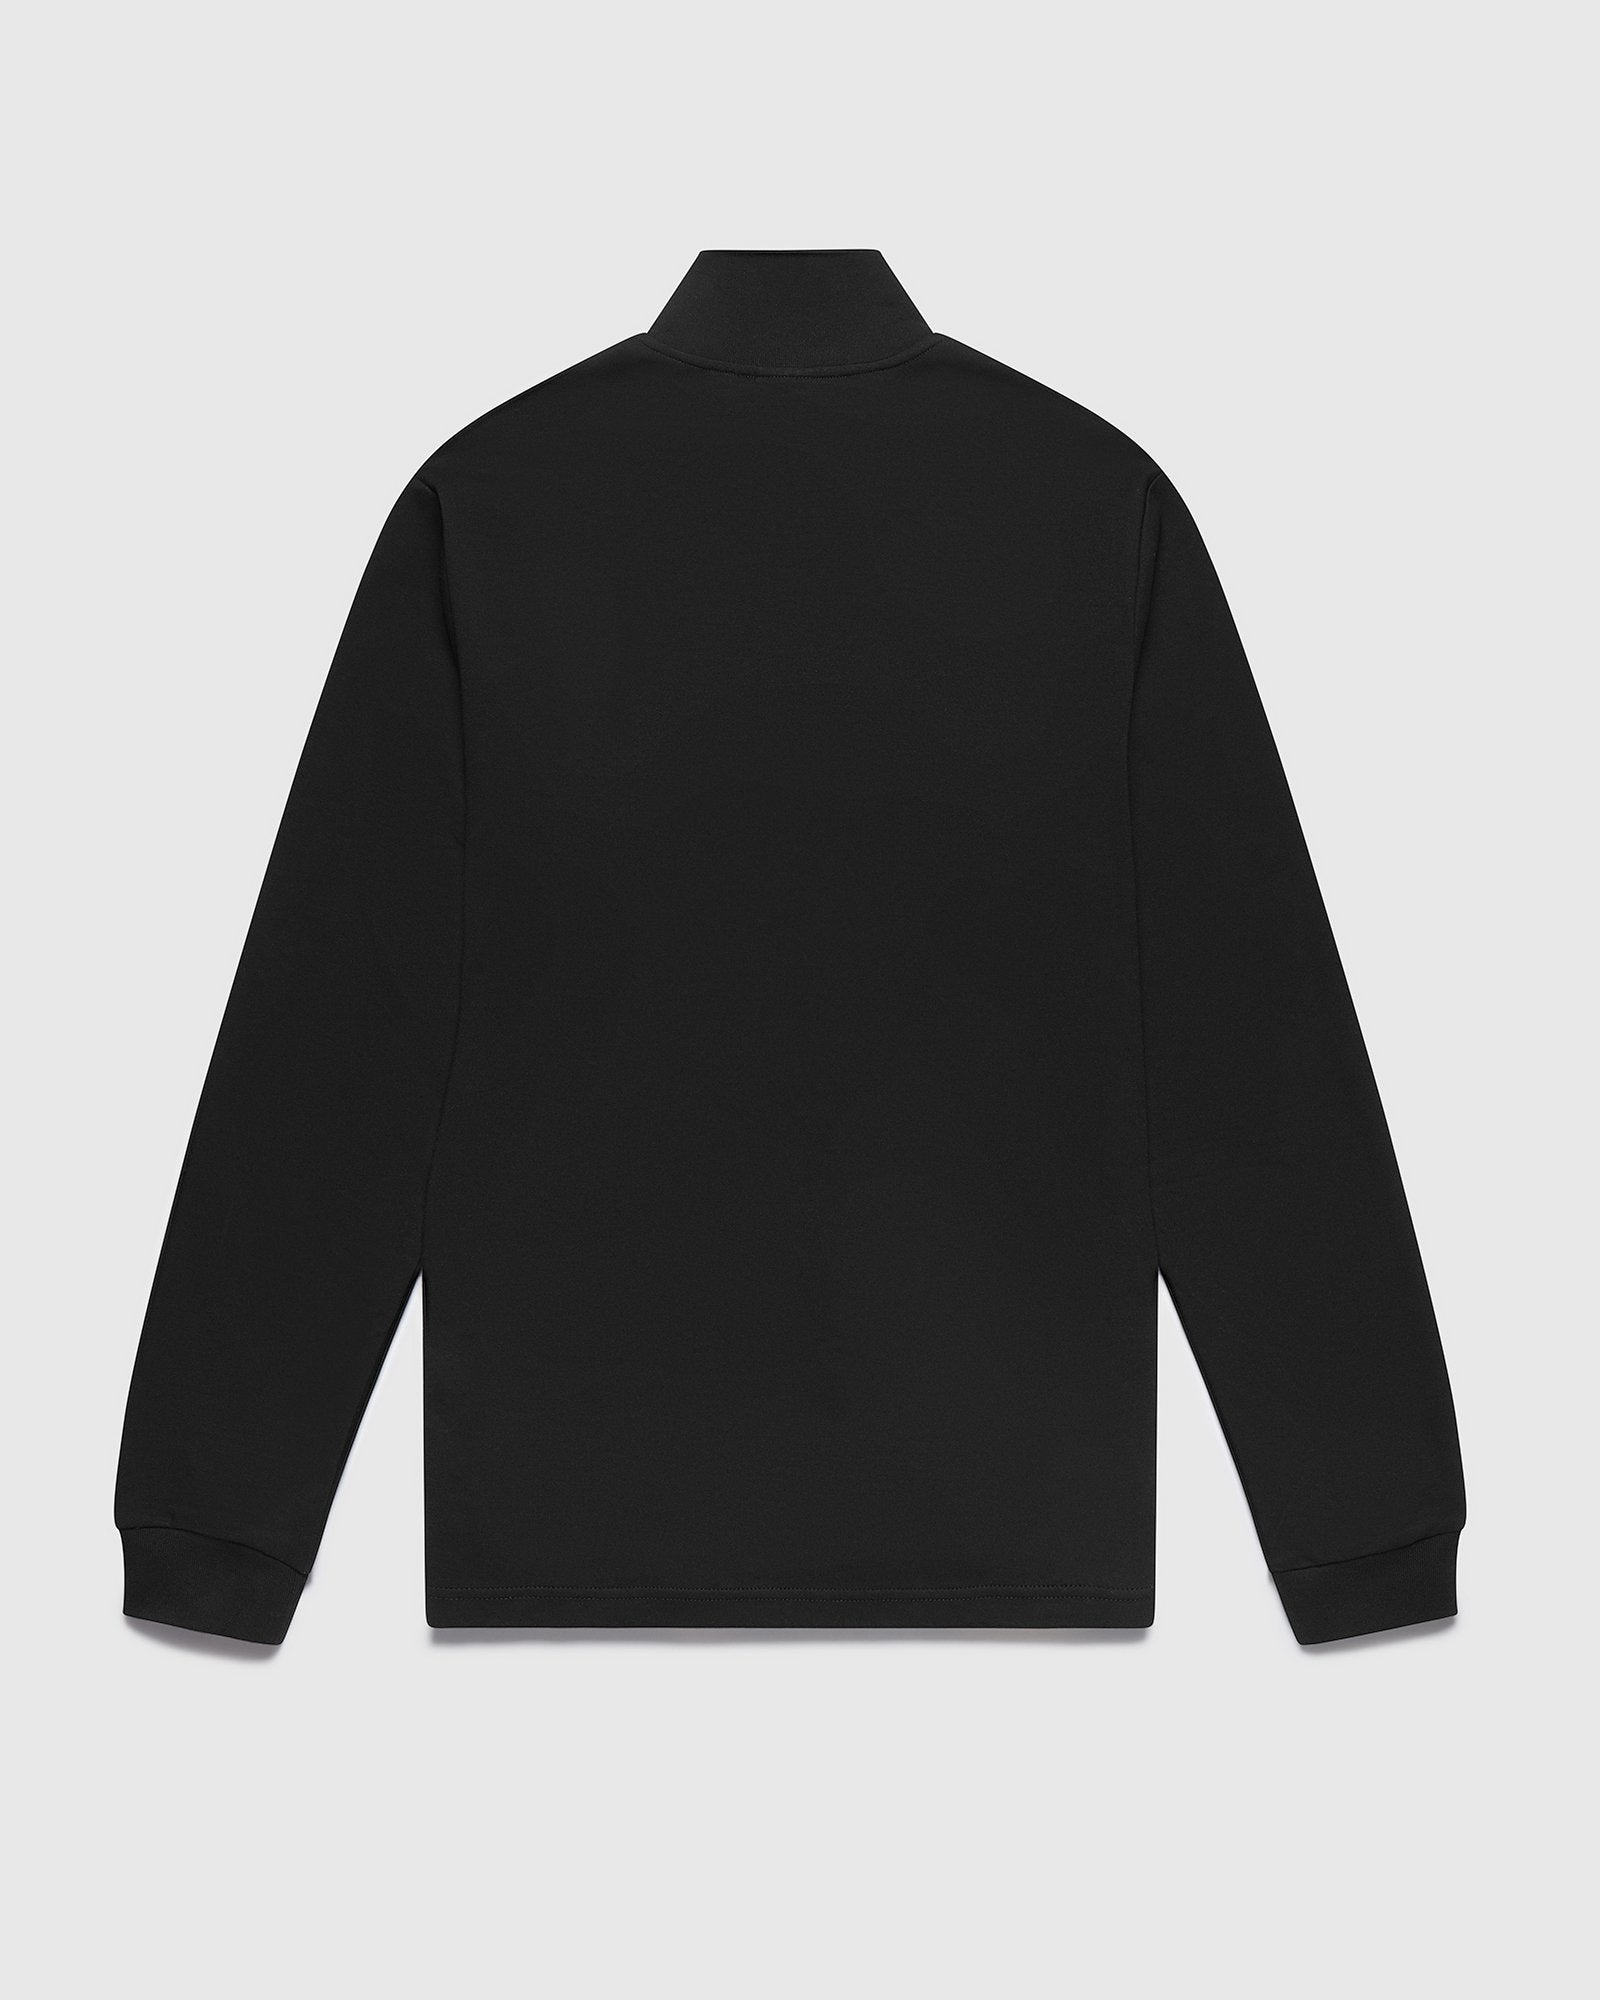 INTERLOCK 1/4 ZIP MOCK NECK - BLACK IMAGE #2